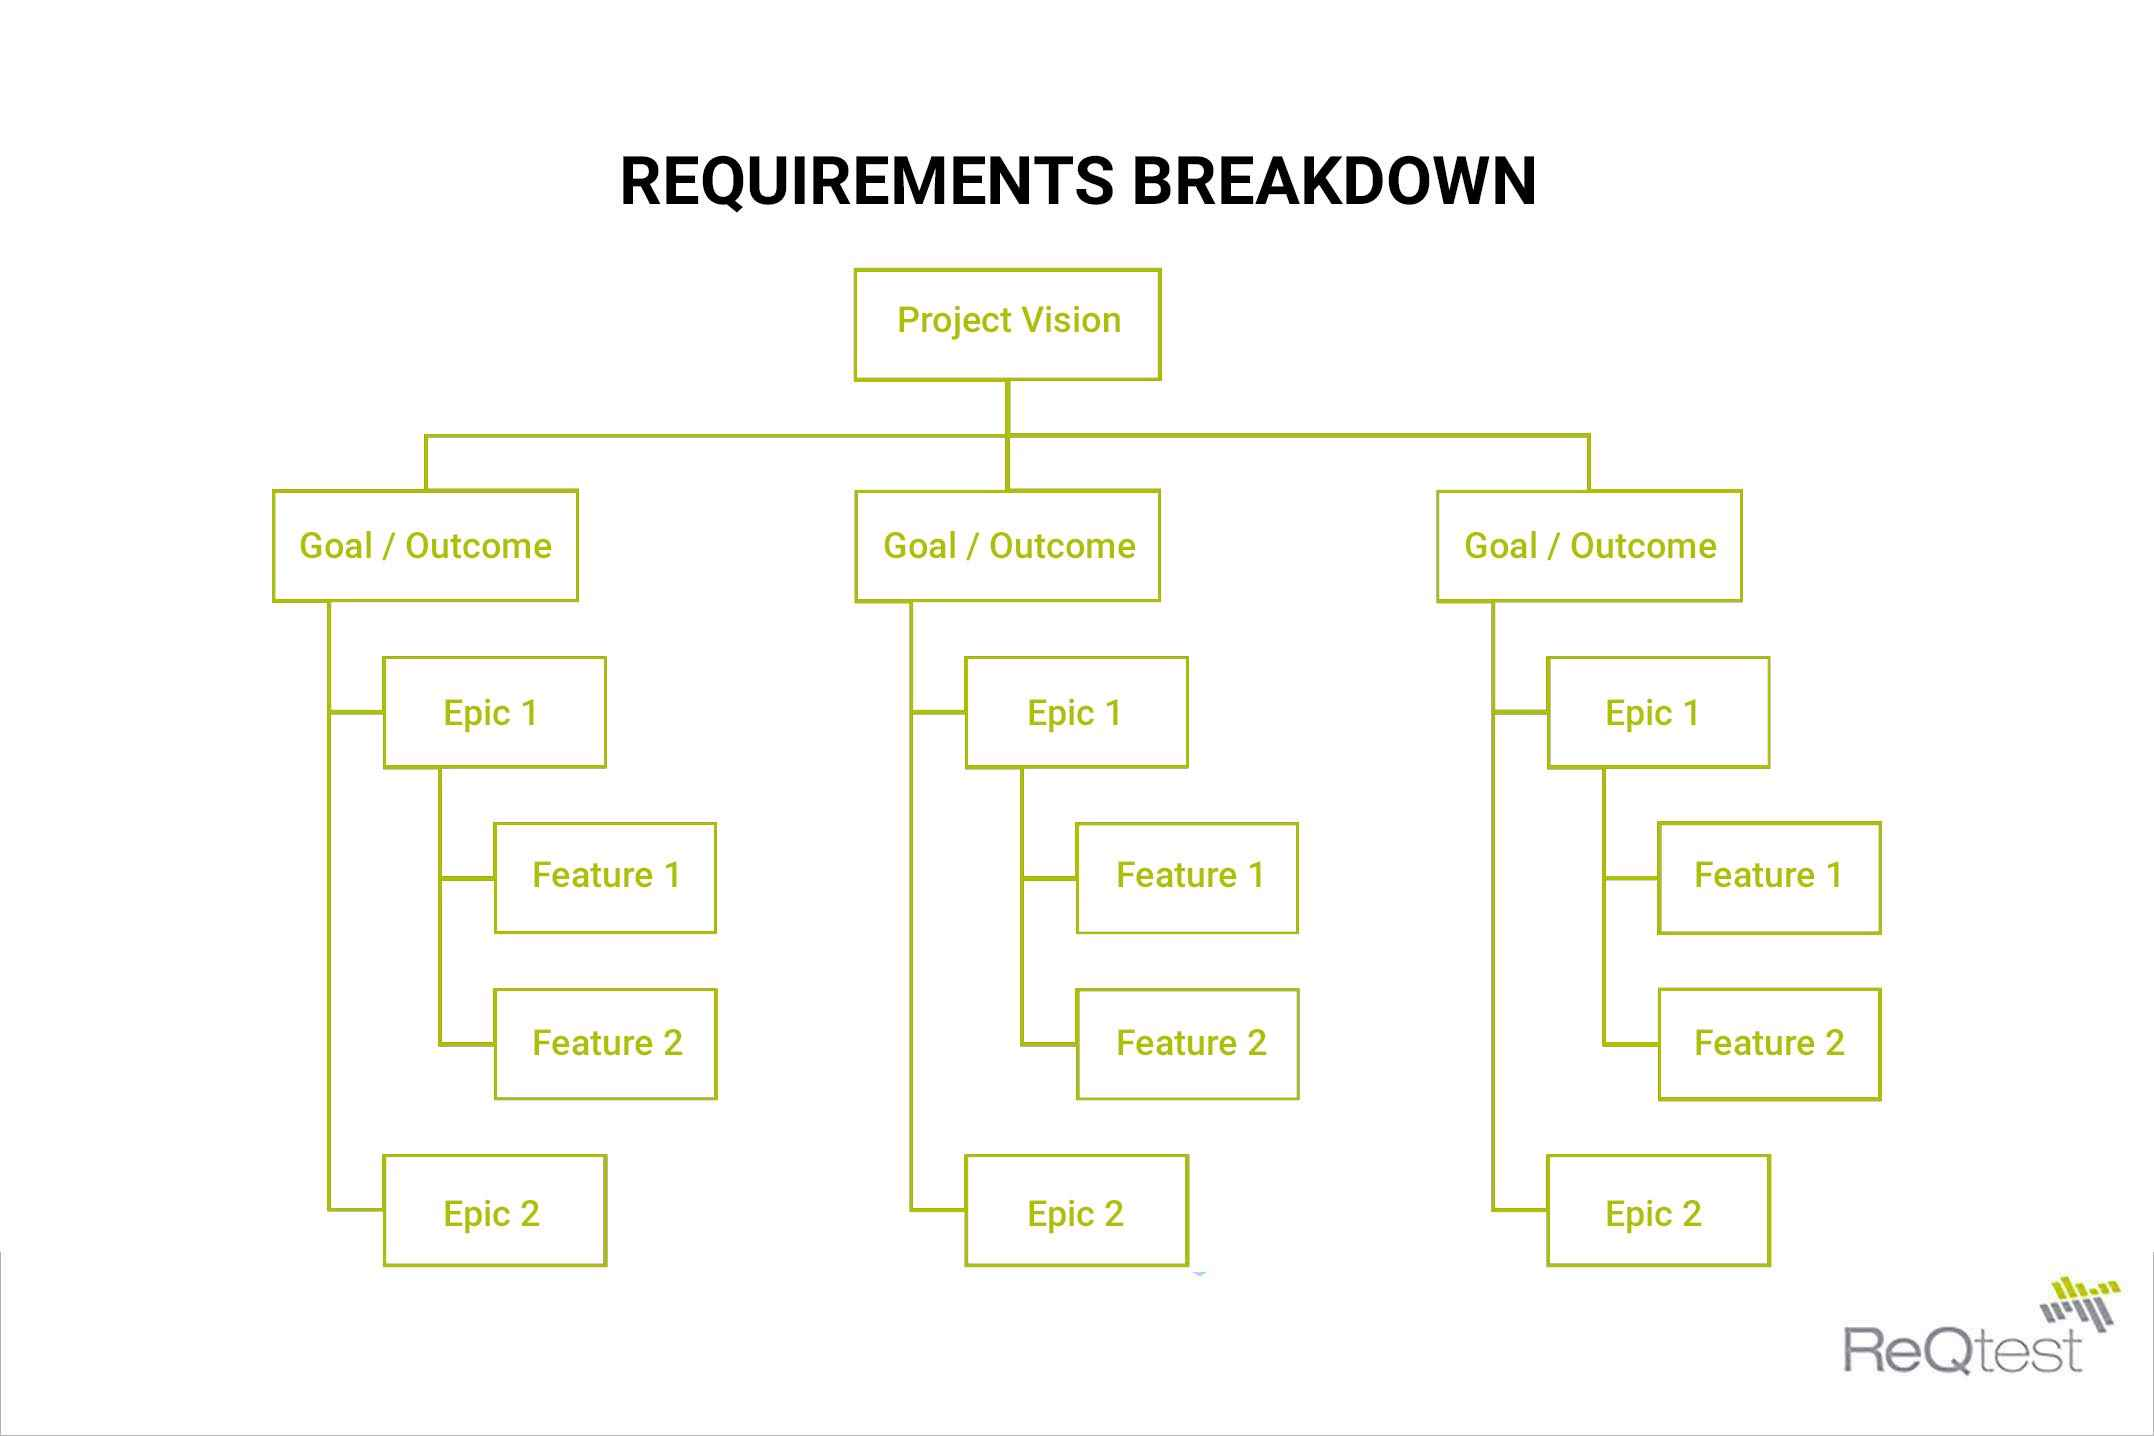 Requirements breakdown